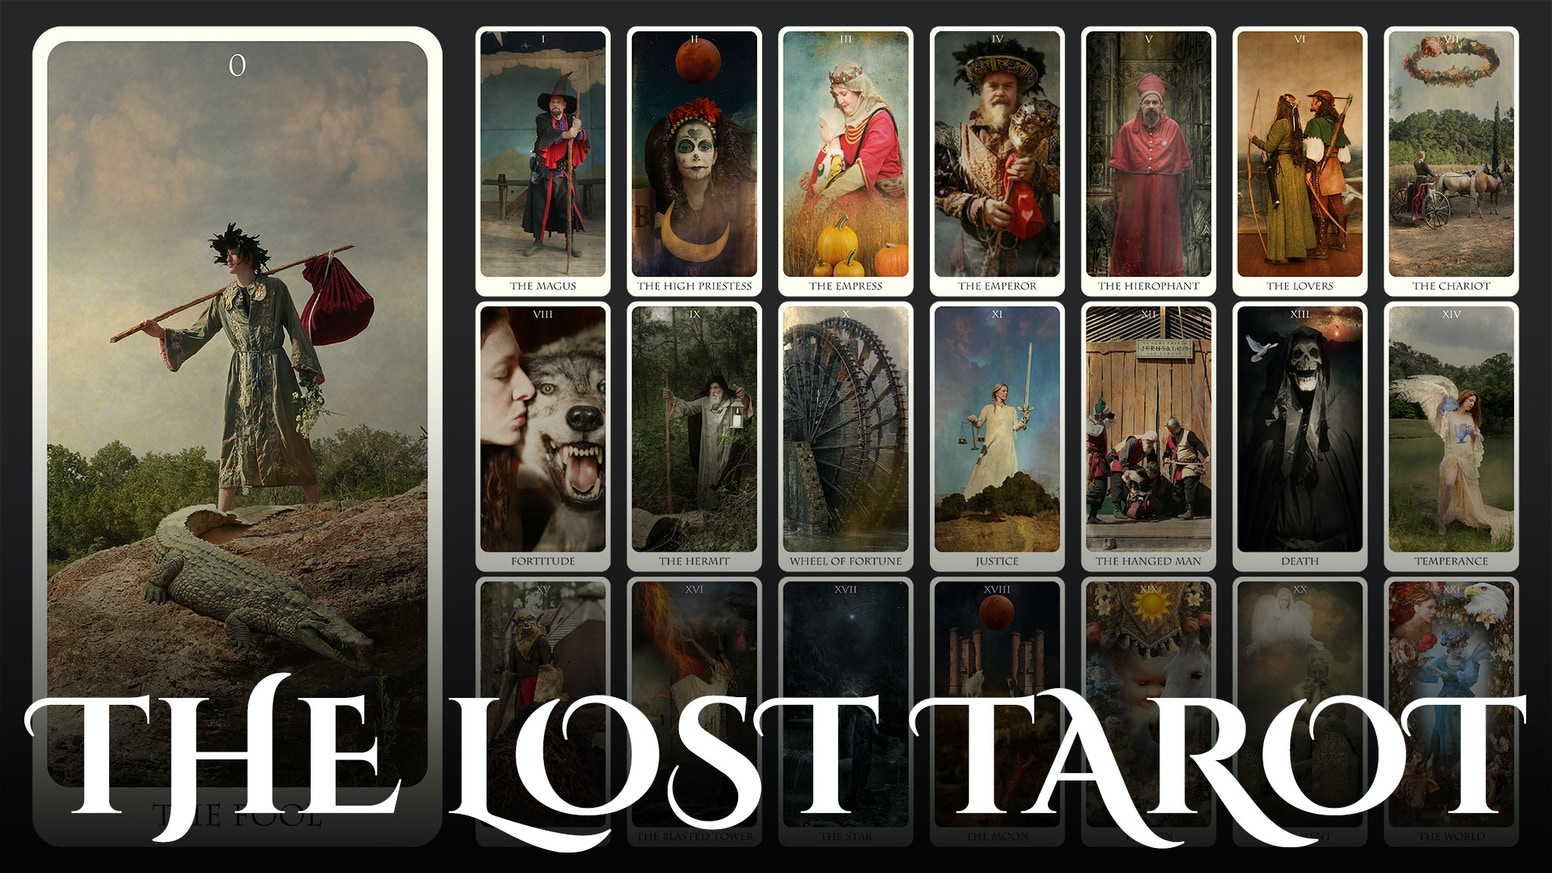 The Lost Tarot - An Exquisite Major Arcana Limited Edition by Hans